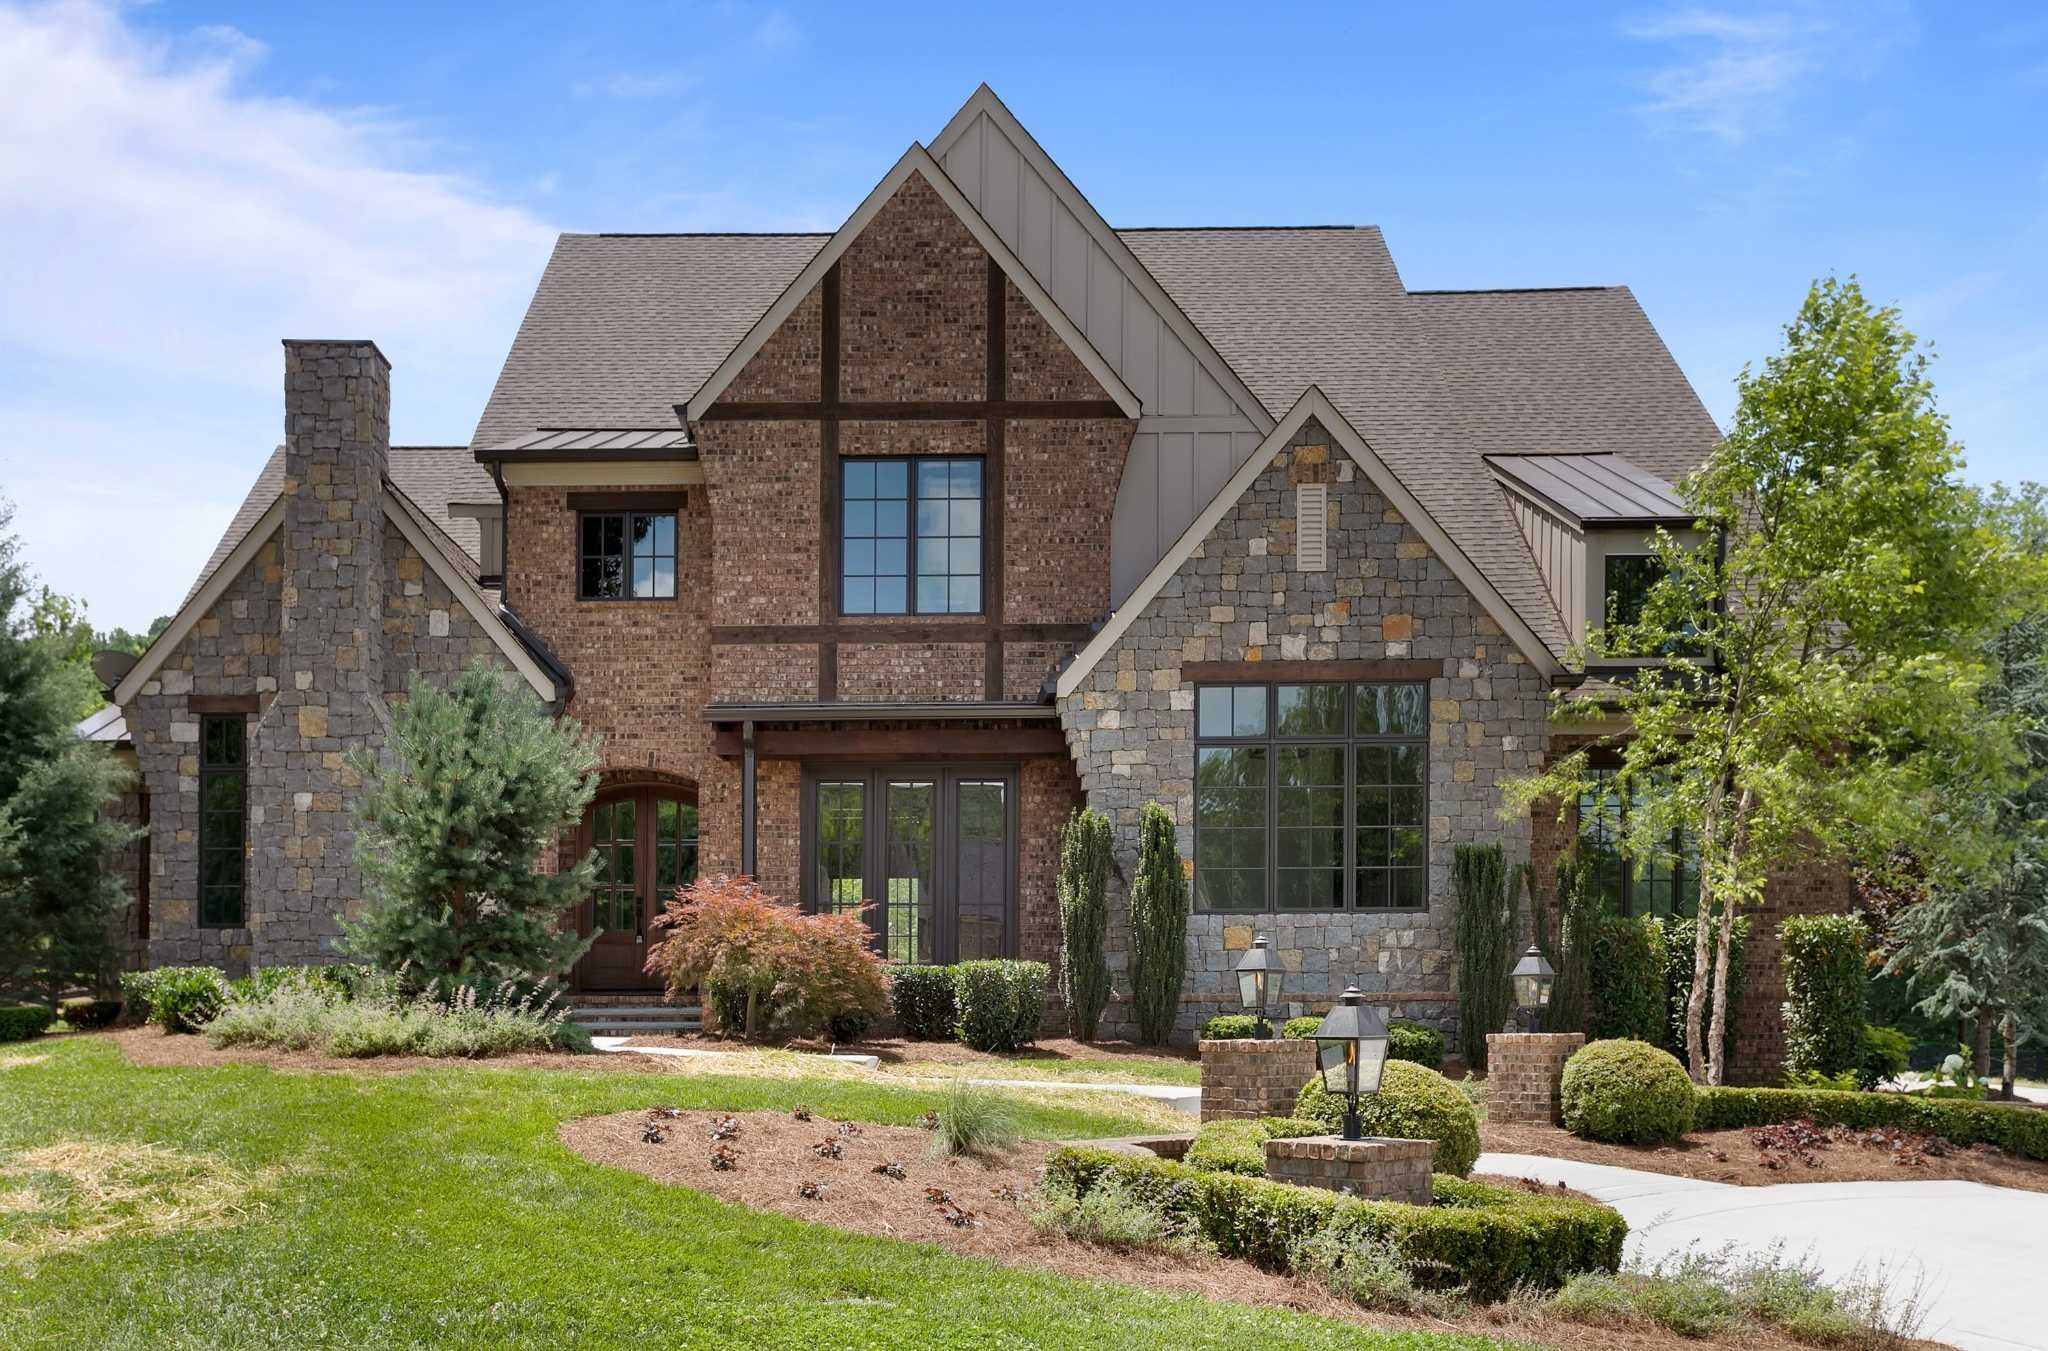 $3,899,900 - 5Br/7Ba -  for Sale in Cartwright Close, Brentwood